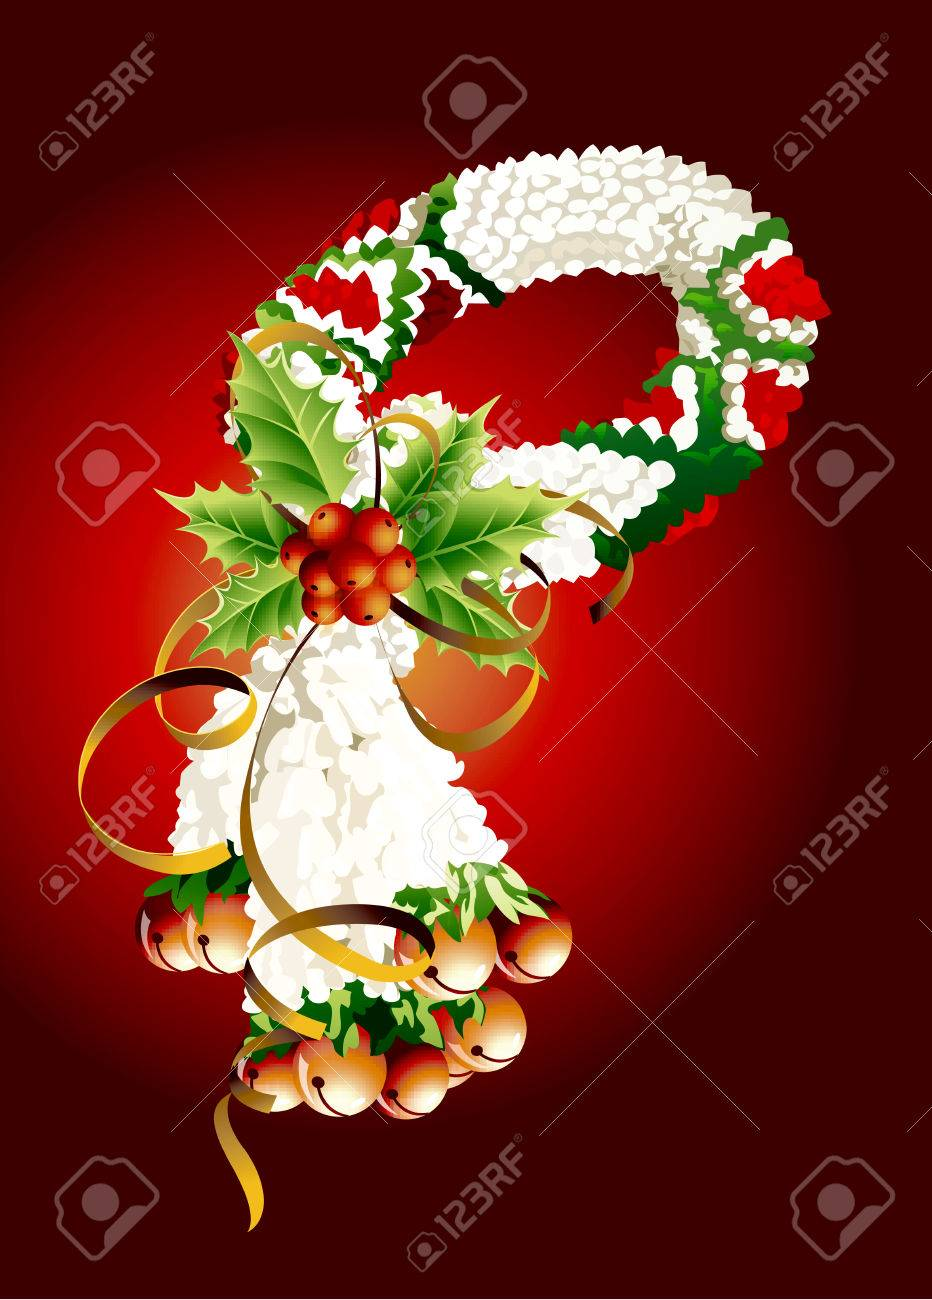 An Illustration Of Beautiful Flower Garland With White Jasmine